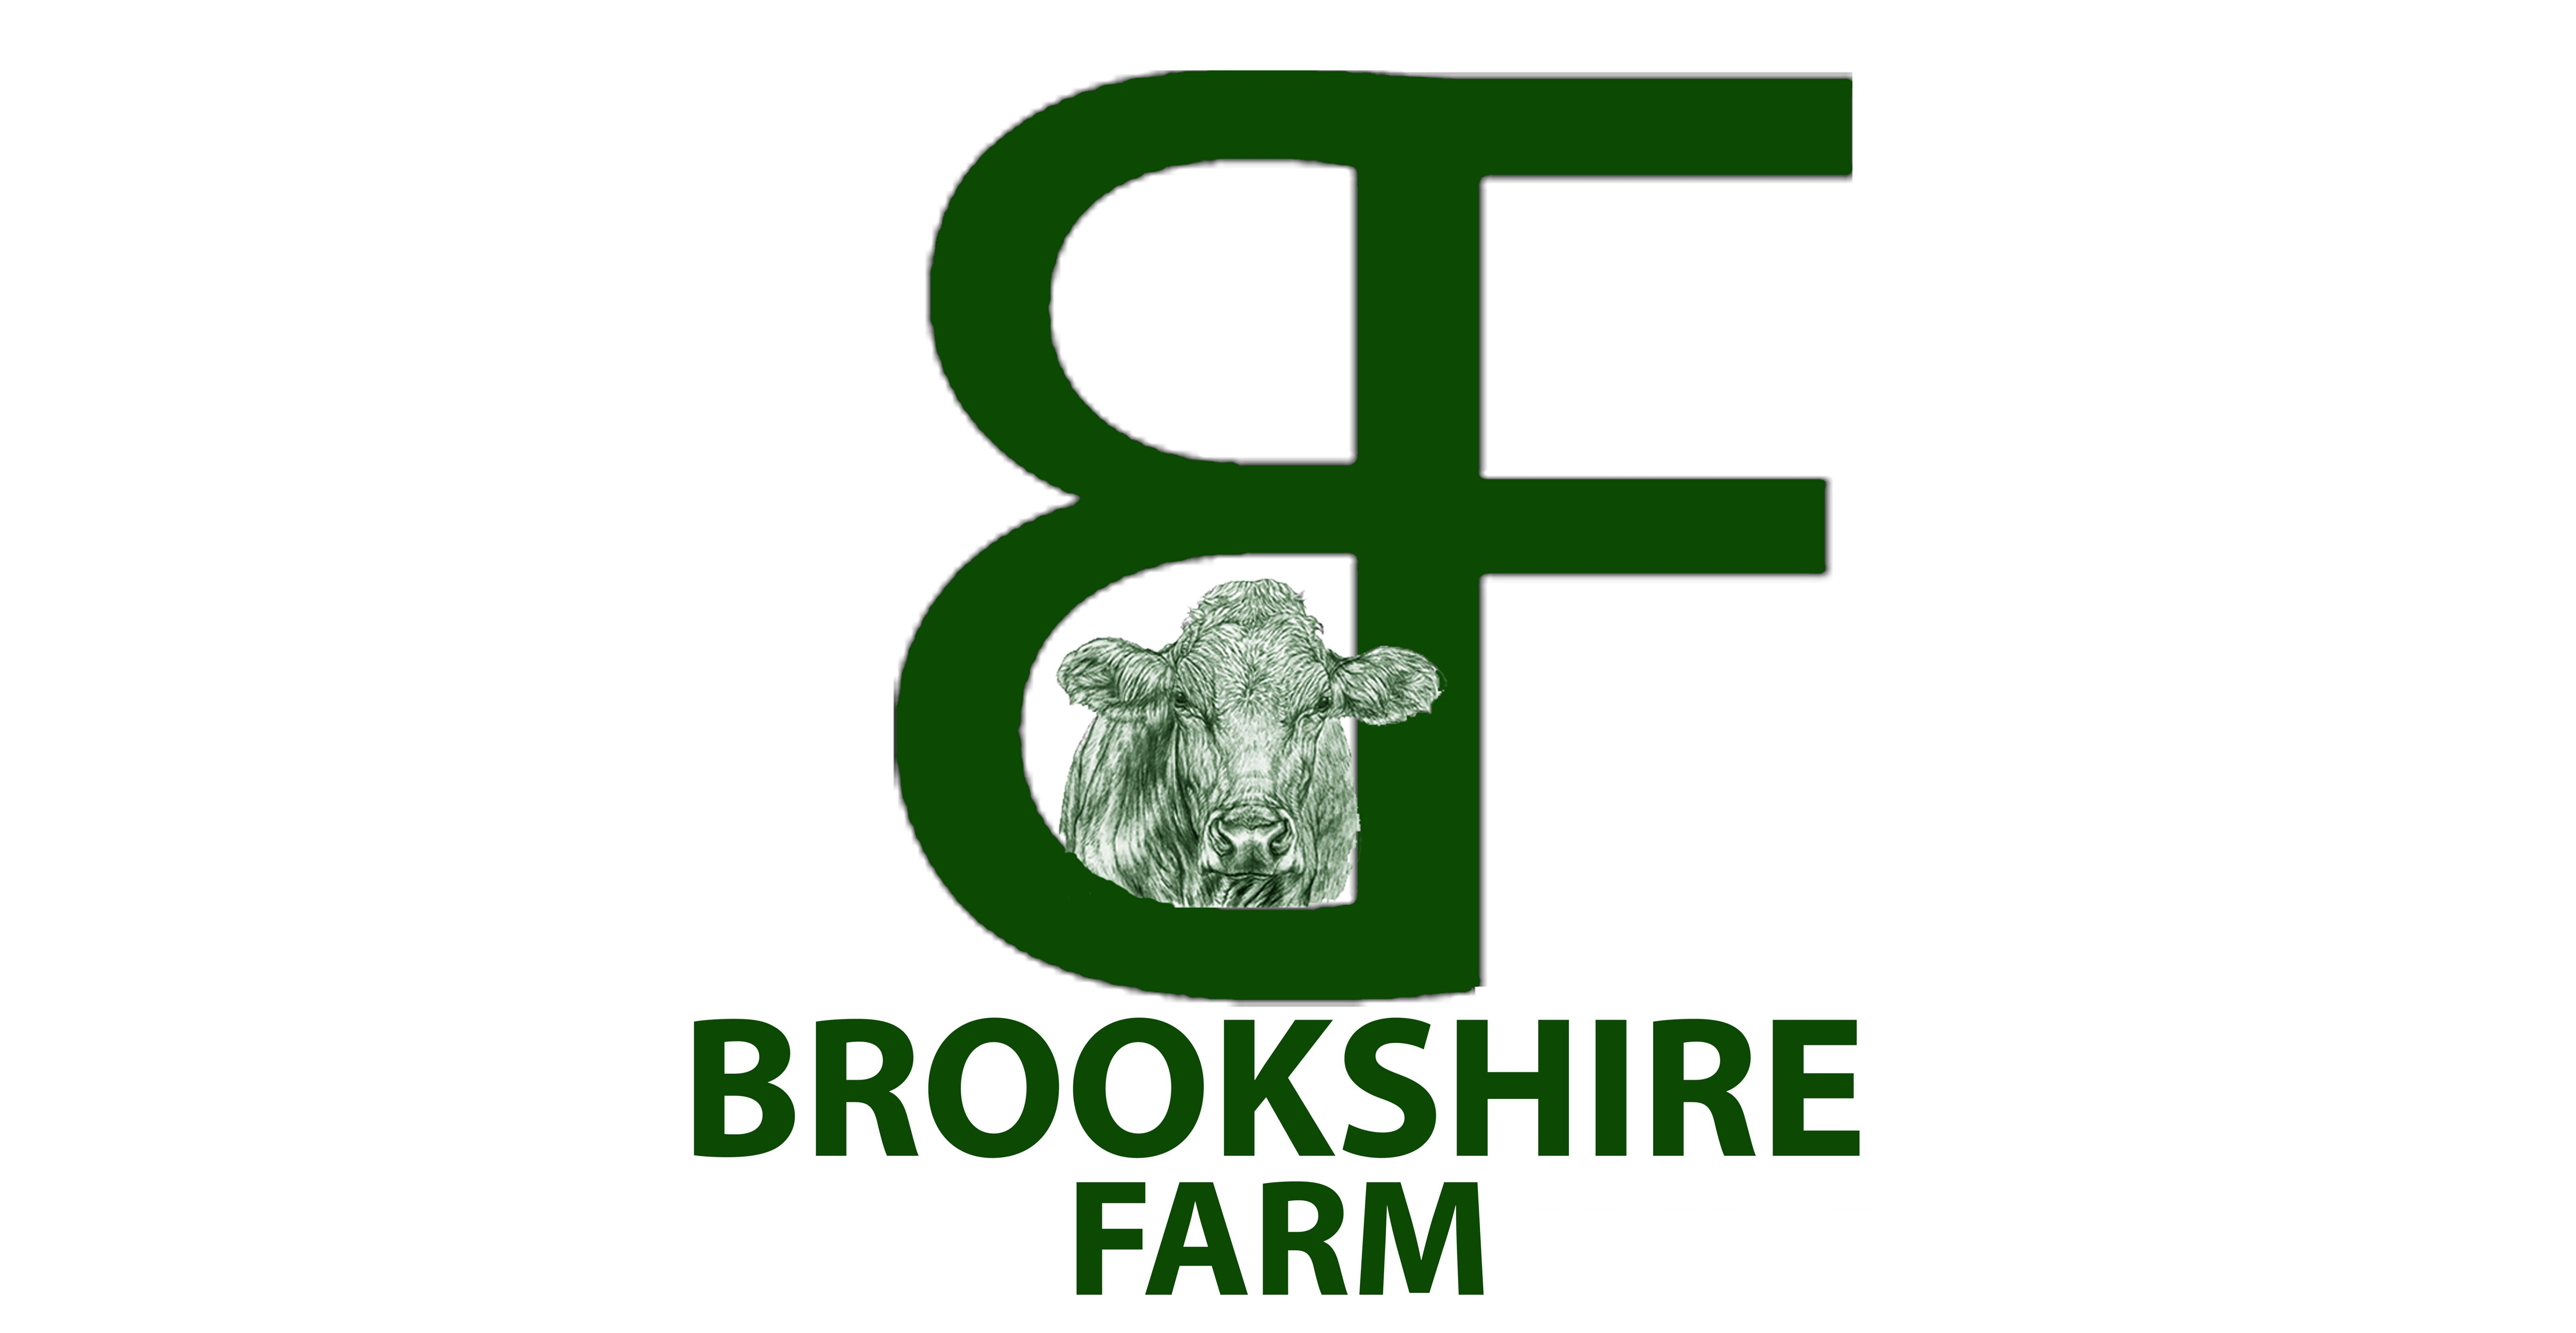 Brookshire Farm Logo